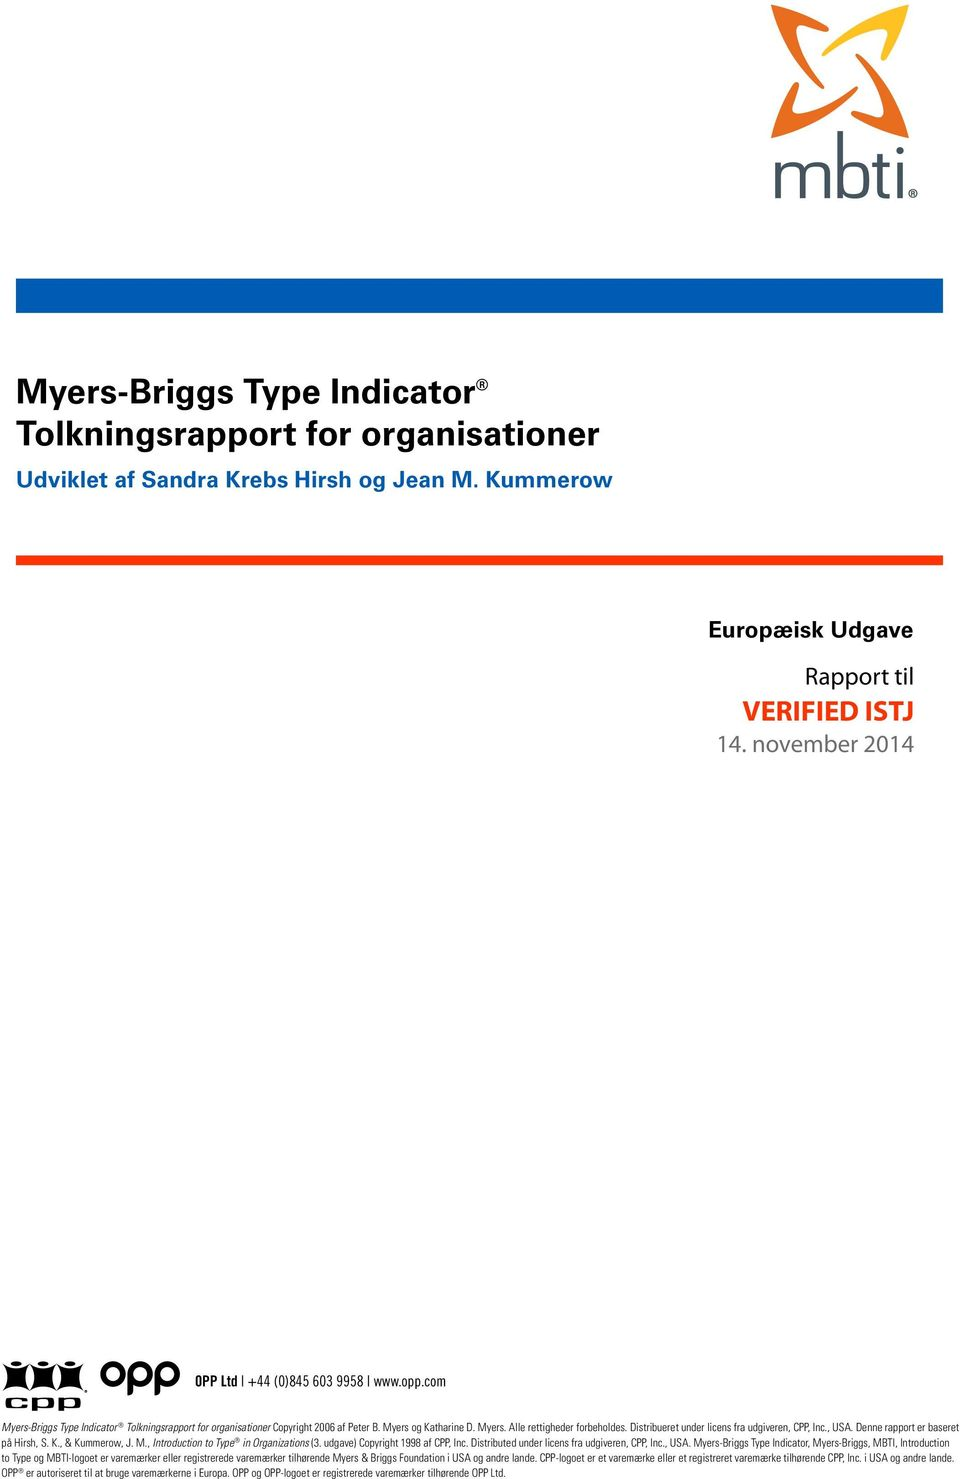 Denne rapport er baseret på Hirsh, S. K., & Kummerow, J. M., Introduction to Type in Organizations (3. udgave) Copyright 1998 af CPP, Inc. Distributed under licens fra udgiveren, CPP, Inc., USA.